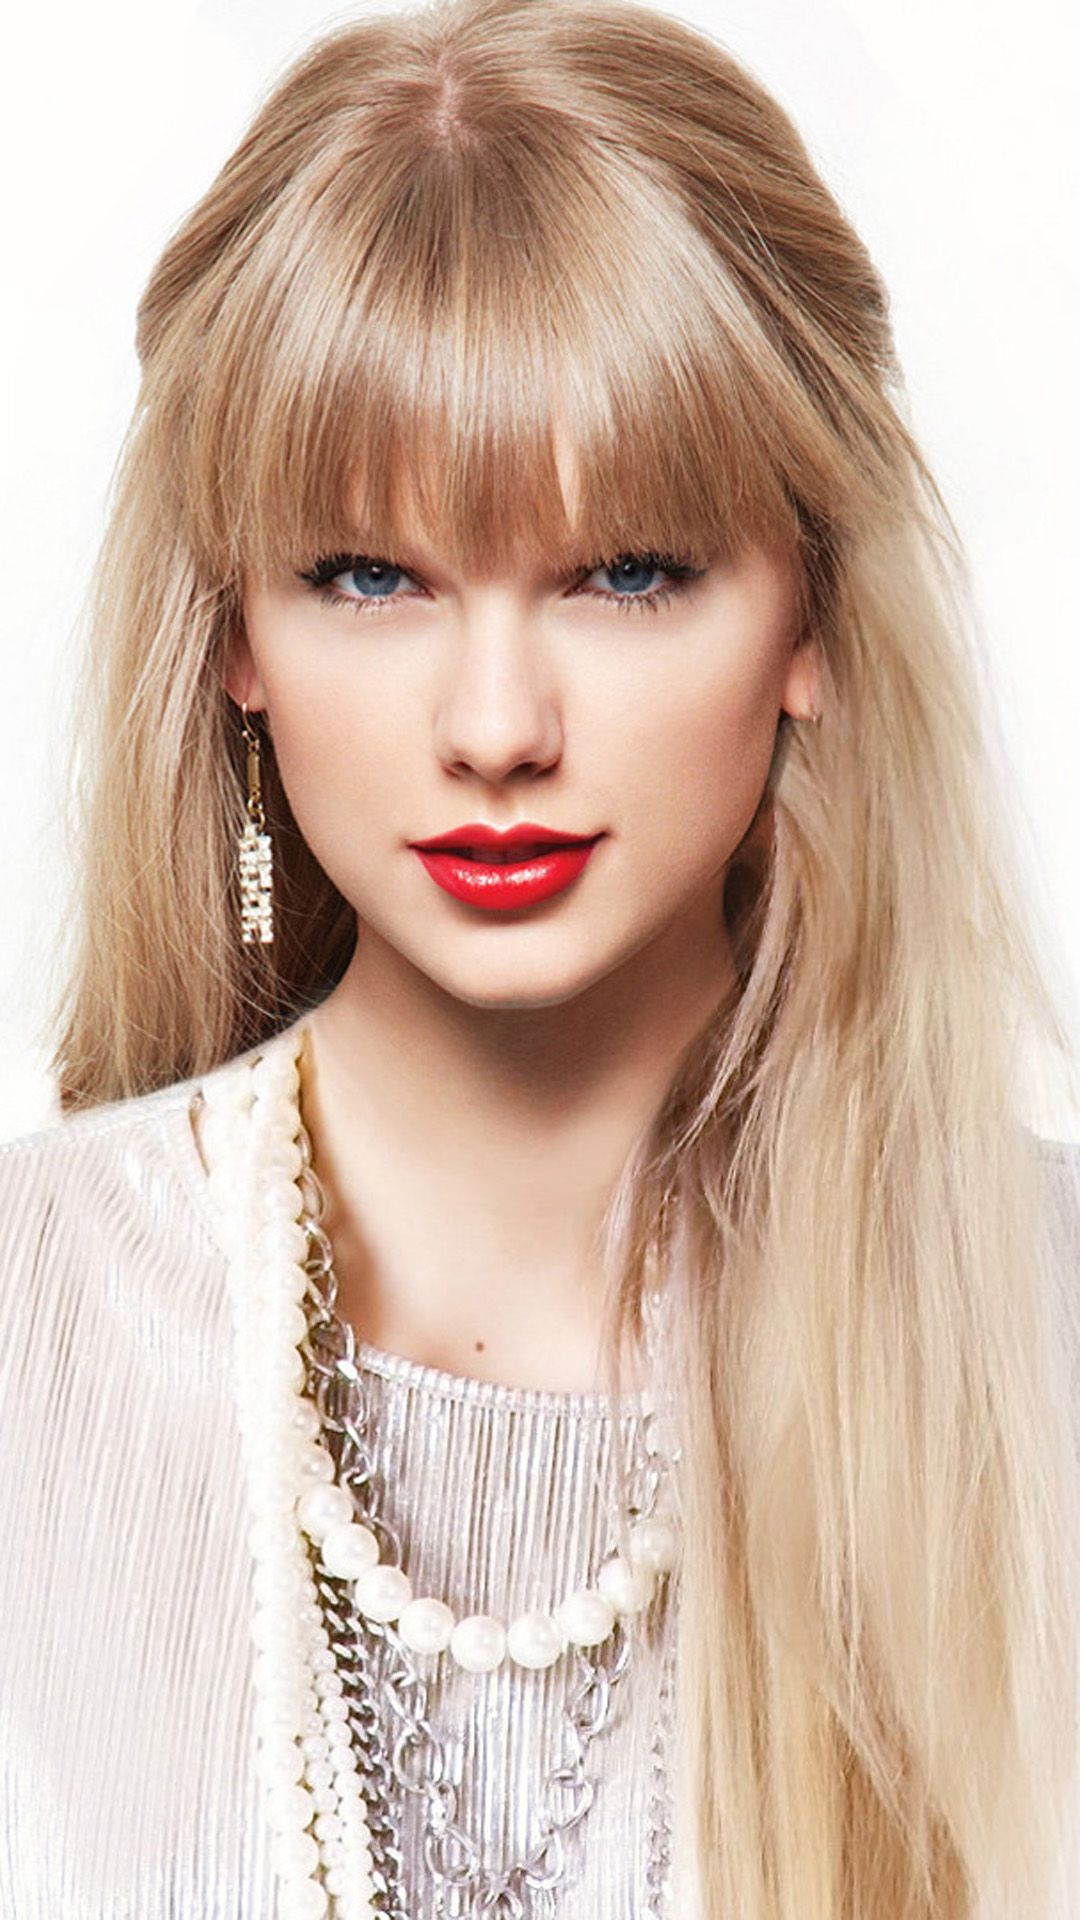 taylor swift samsung hd wallpaper ⋆ getphotos